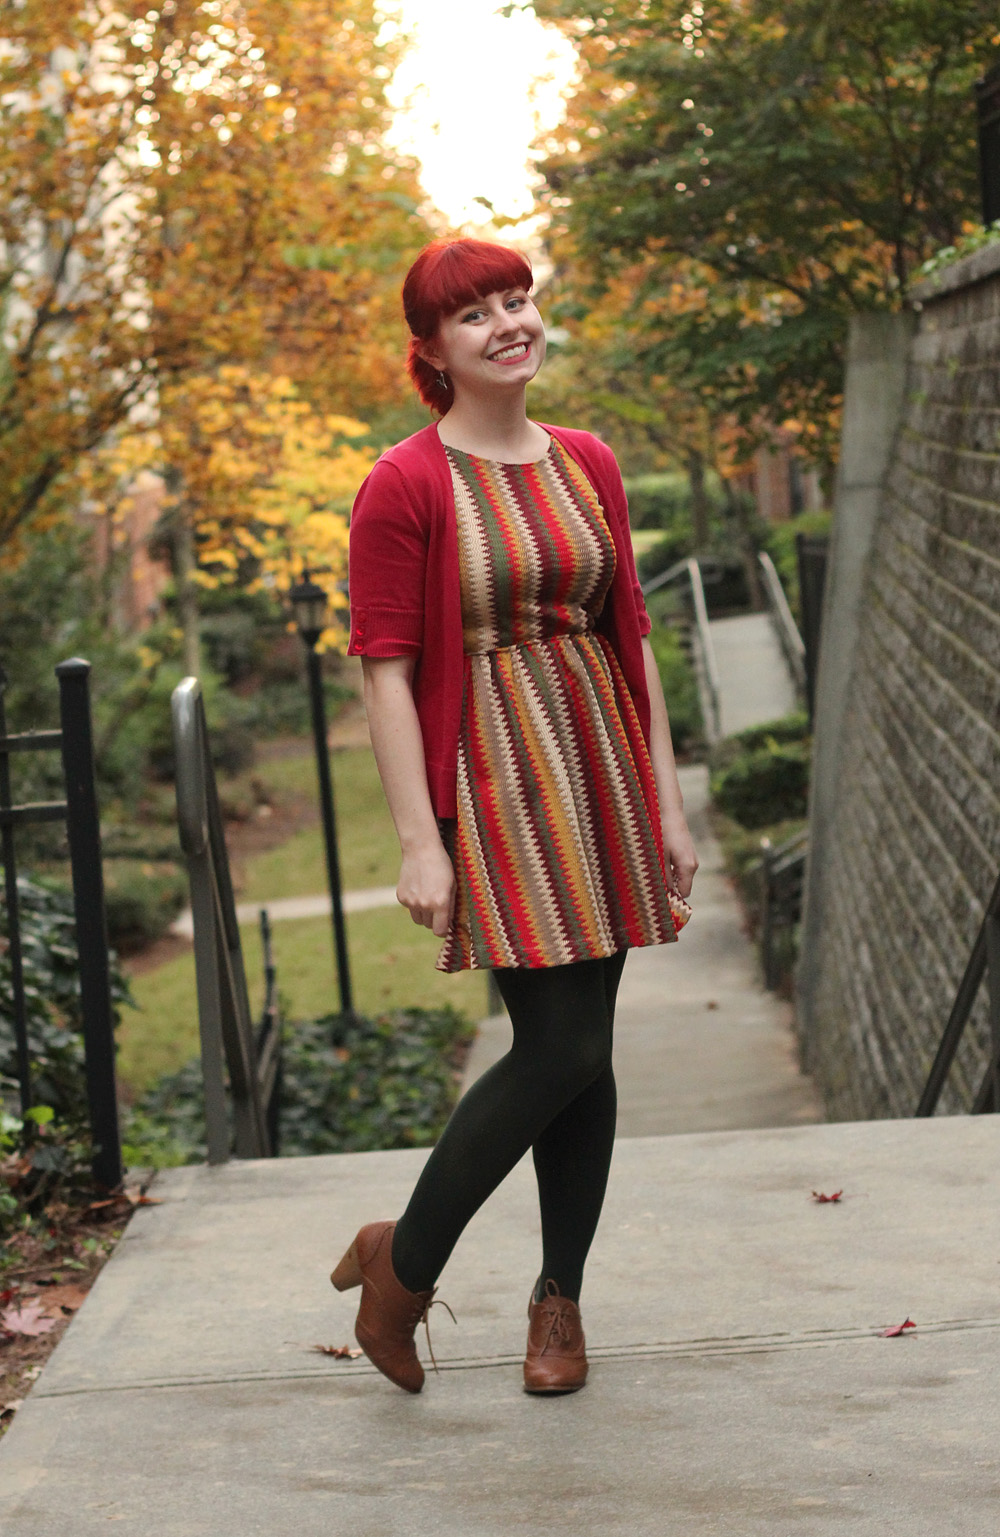 Autumnal Outfit: Red Short Sleeved Cardigan, Chevron Multicolored Modcloth Dress, Dark Green Tights, and Brown Oxford Heels